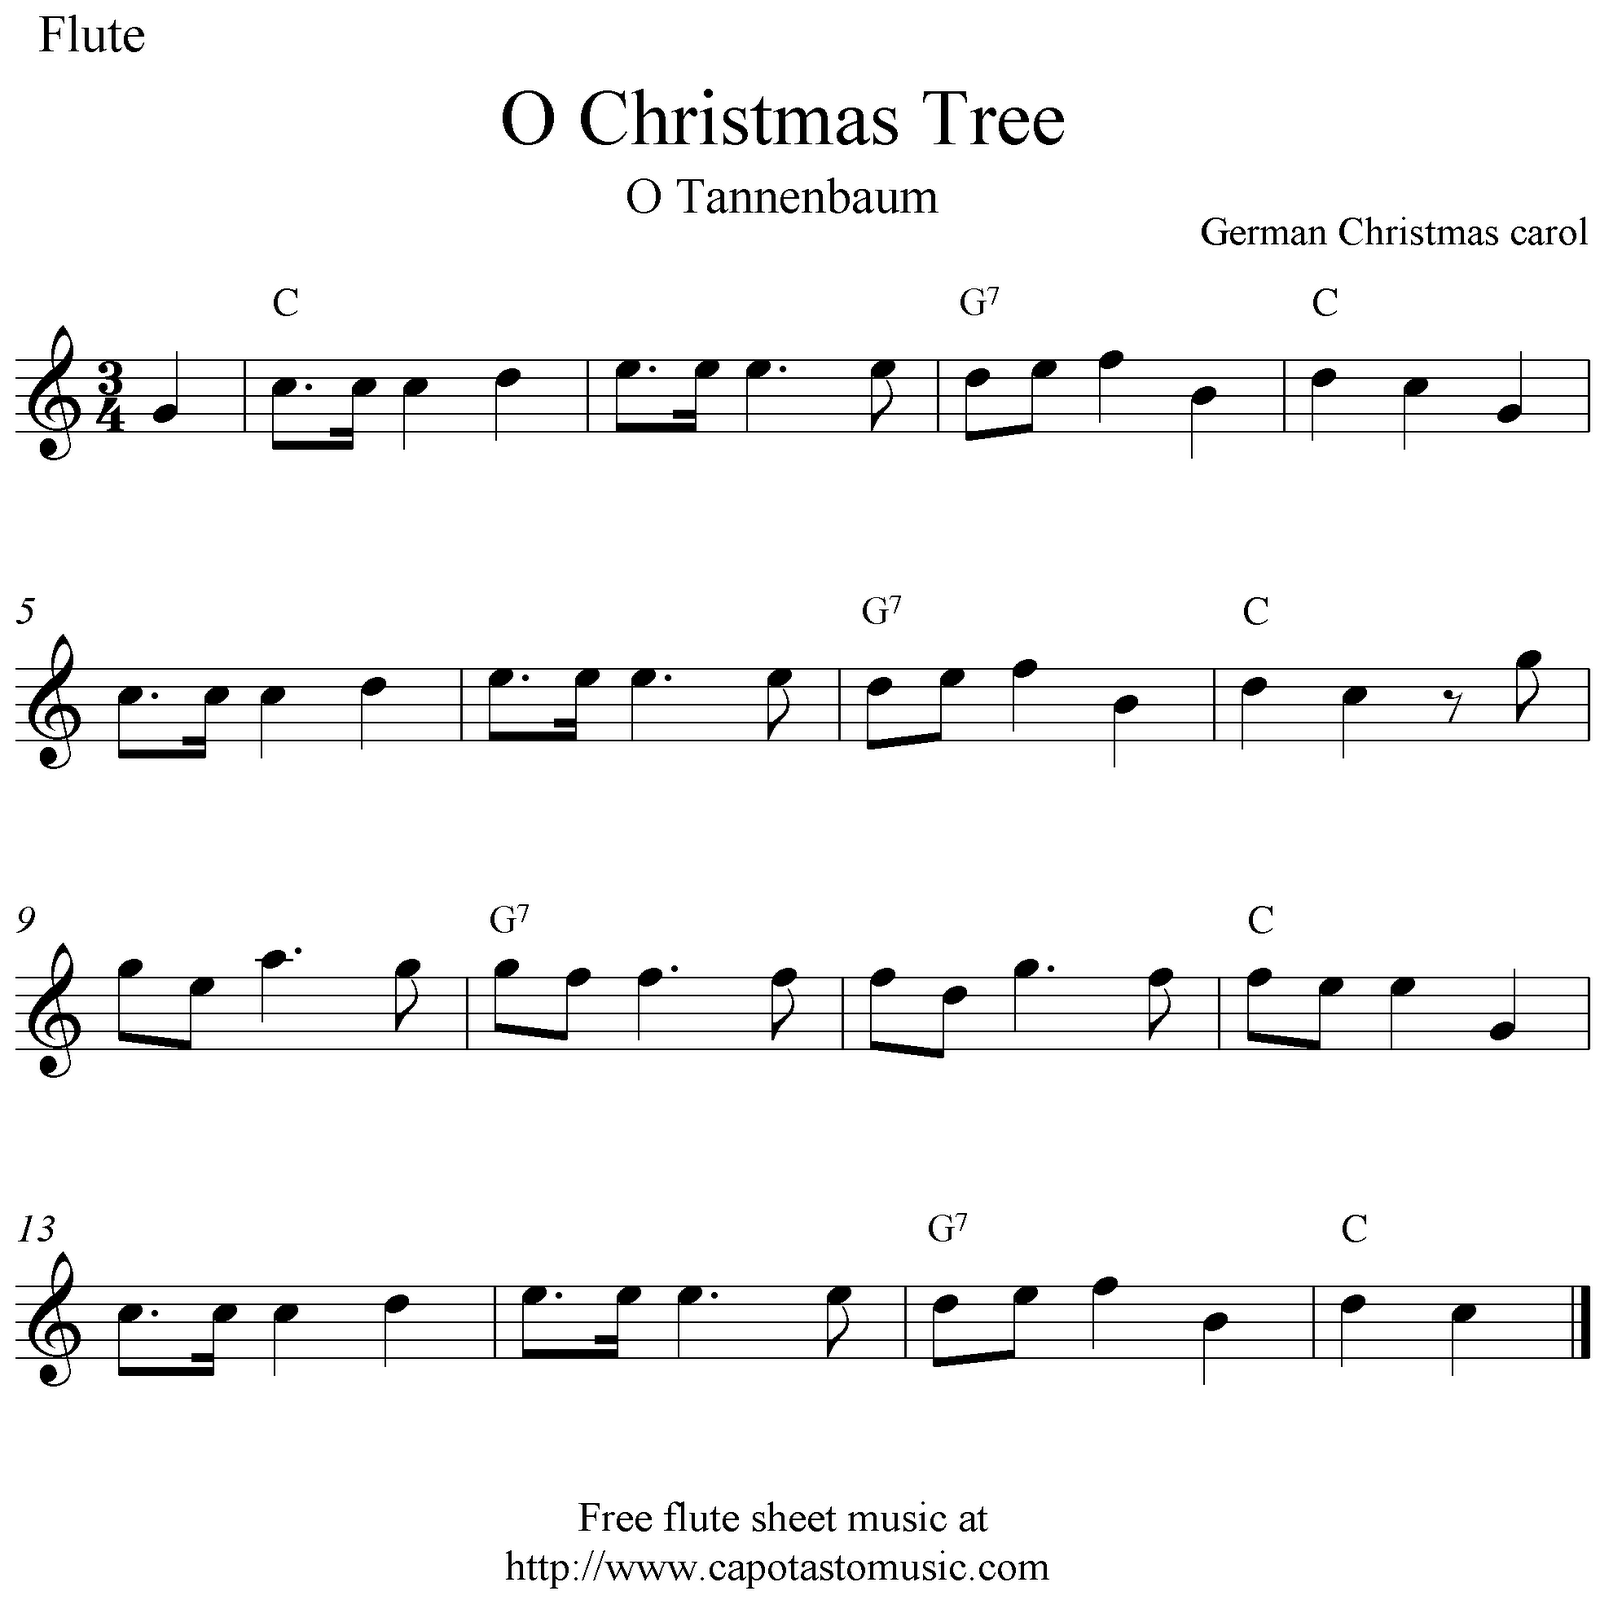 flute notes o Christmas Tree | drawings | Pinterest | Flute Sheet ...